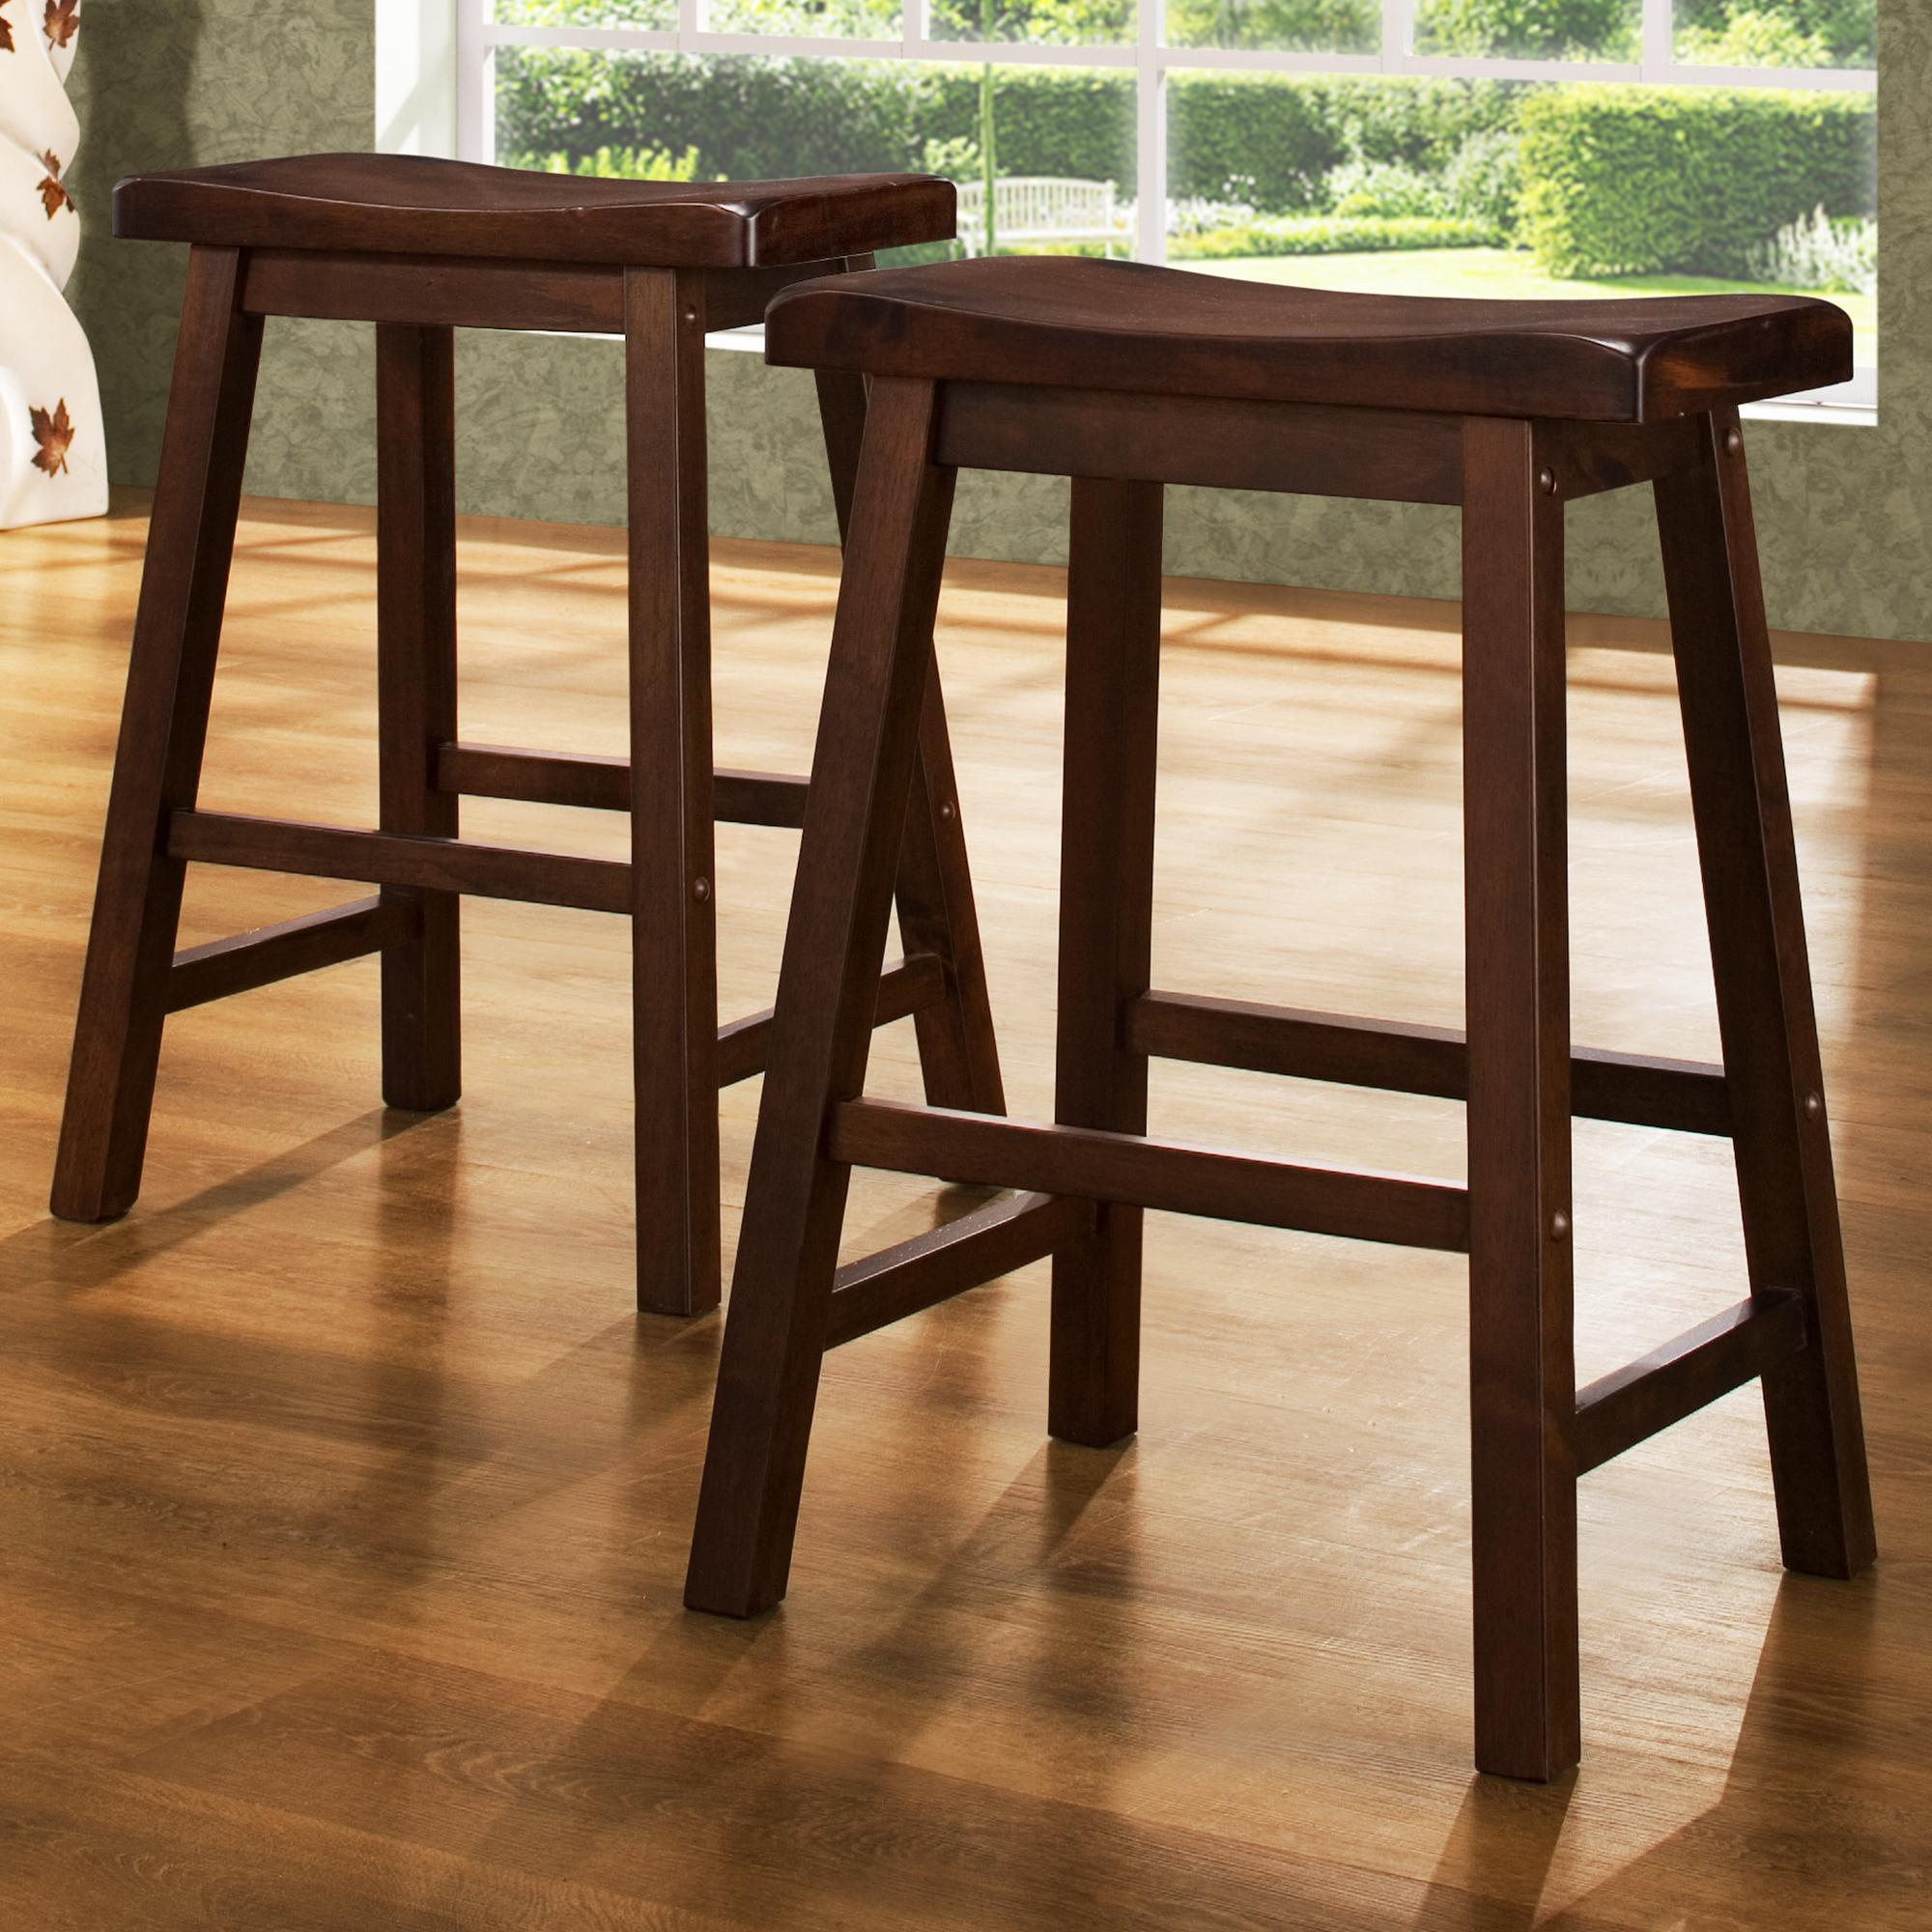 5302 24 Inch Stool by Homelegance at Nassau Furniture and Mattress